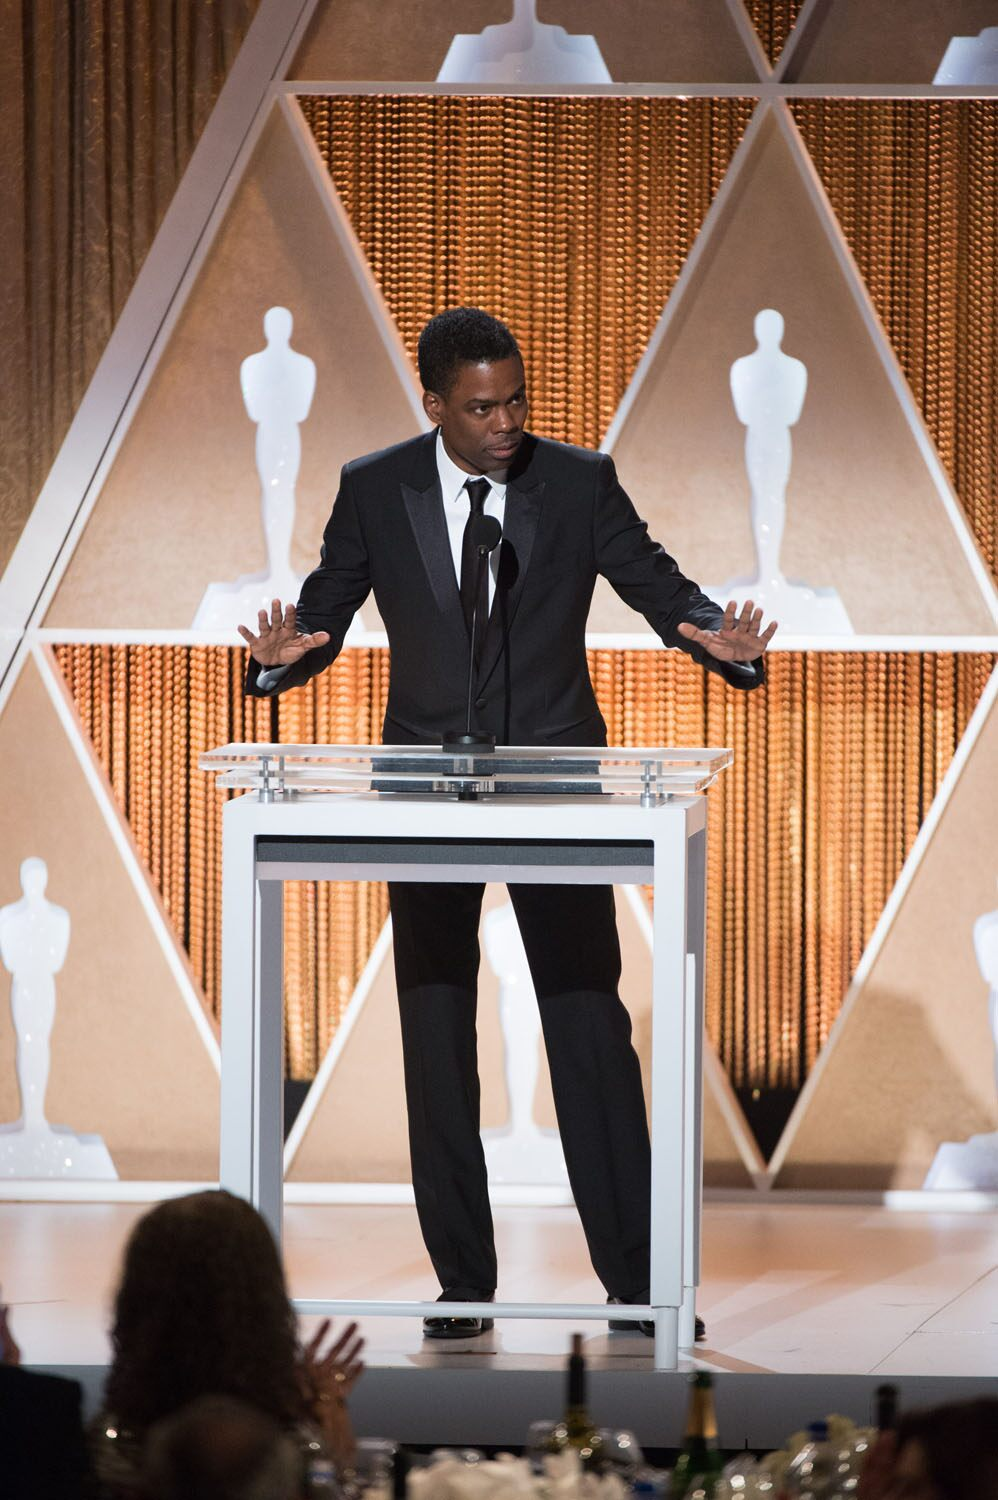 Actor Chris Rock speaks as part of the award presentation to Jean Hersholt Humanitarian Award recipient Harry Belafonte during the 2014 Governors Awards